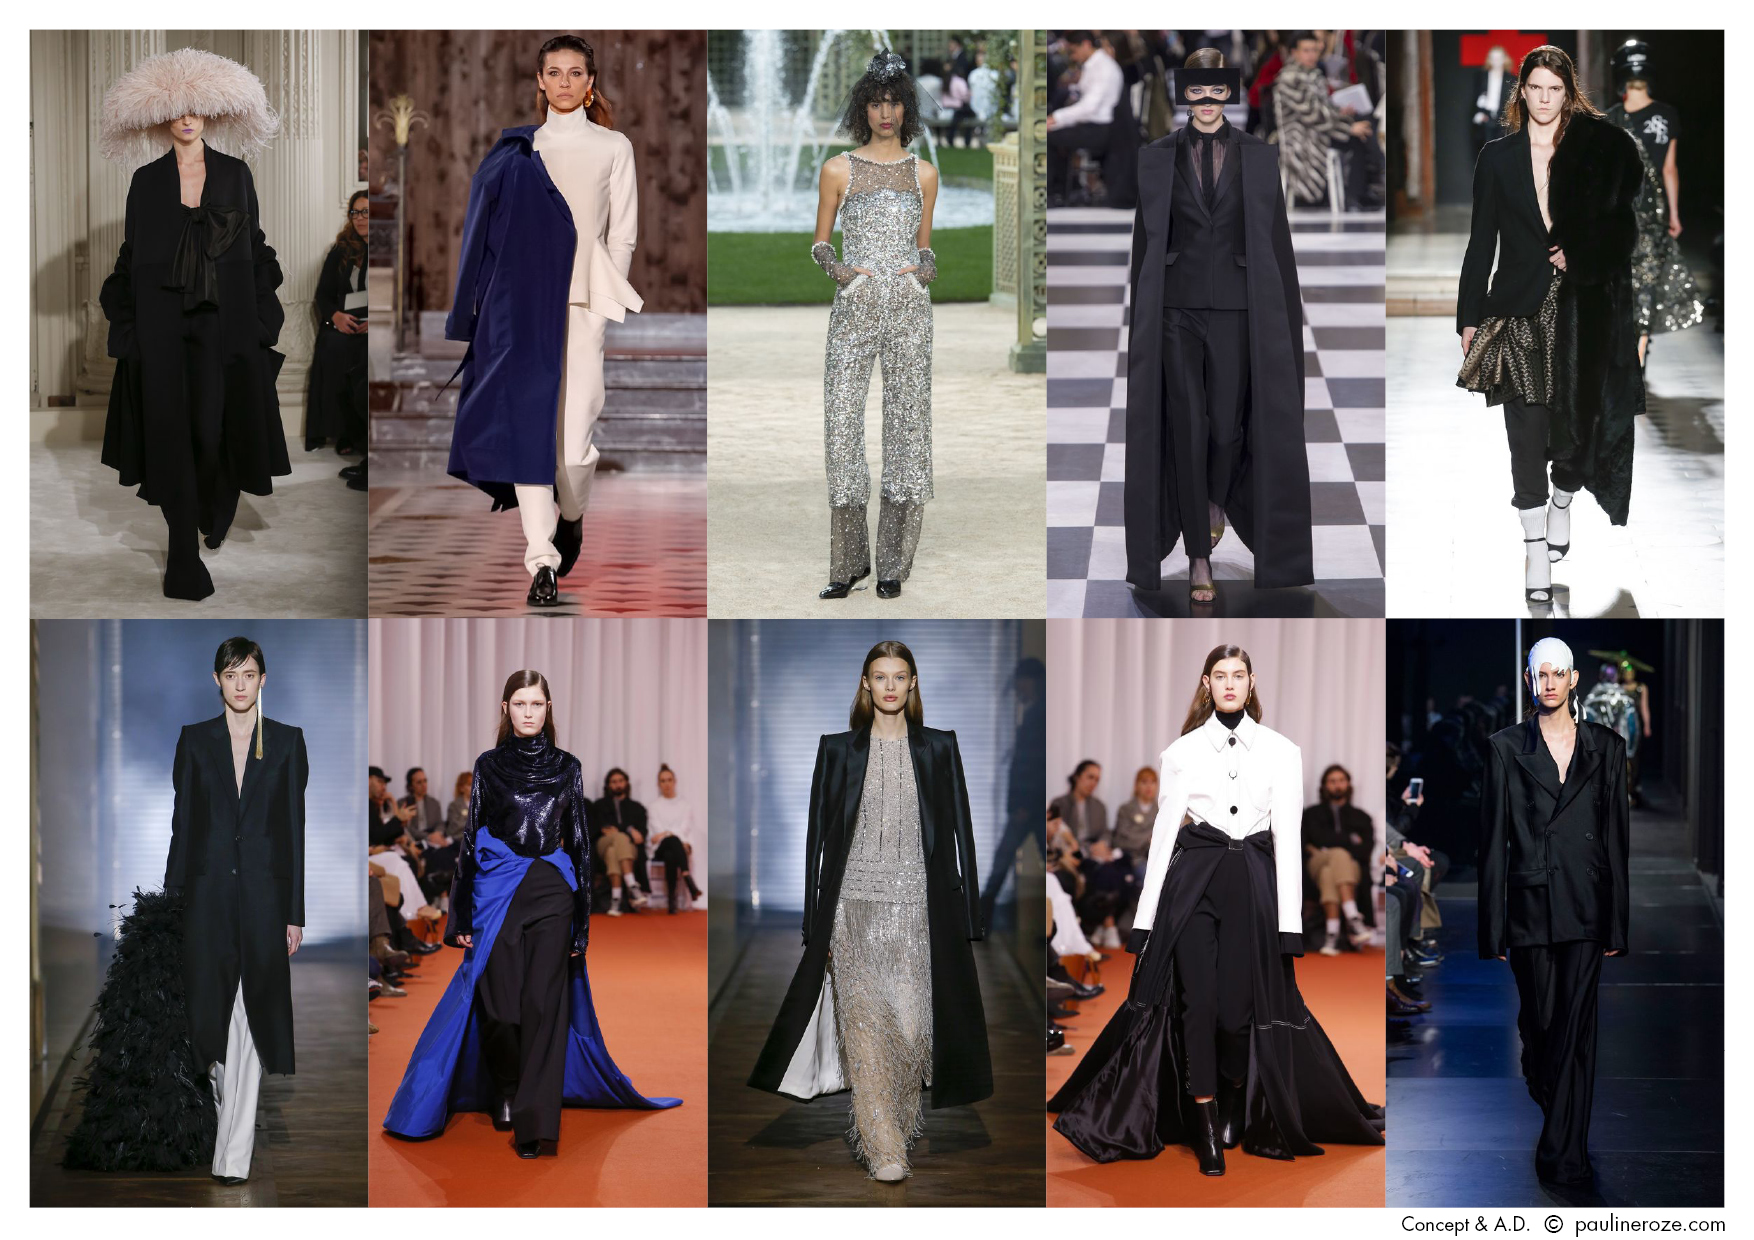 From Left to Right, Top to Bottom:  Valentino, Maison Rabih Kayrouz, Chanel, Christian Dior, A.F. Vandervorst,  Givenchy, Ellery, Givenchy, Ellery, Maison Margiela